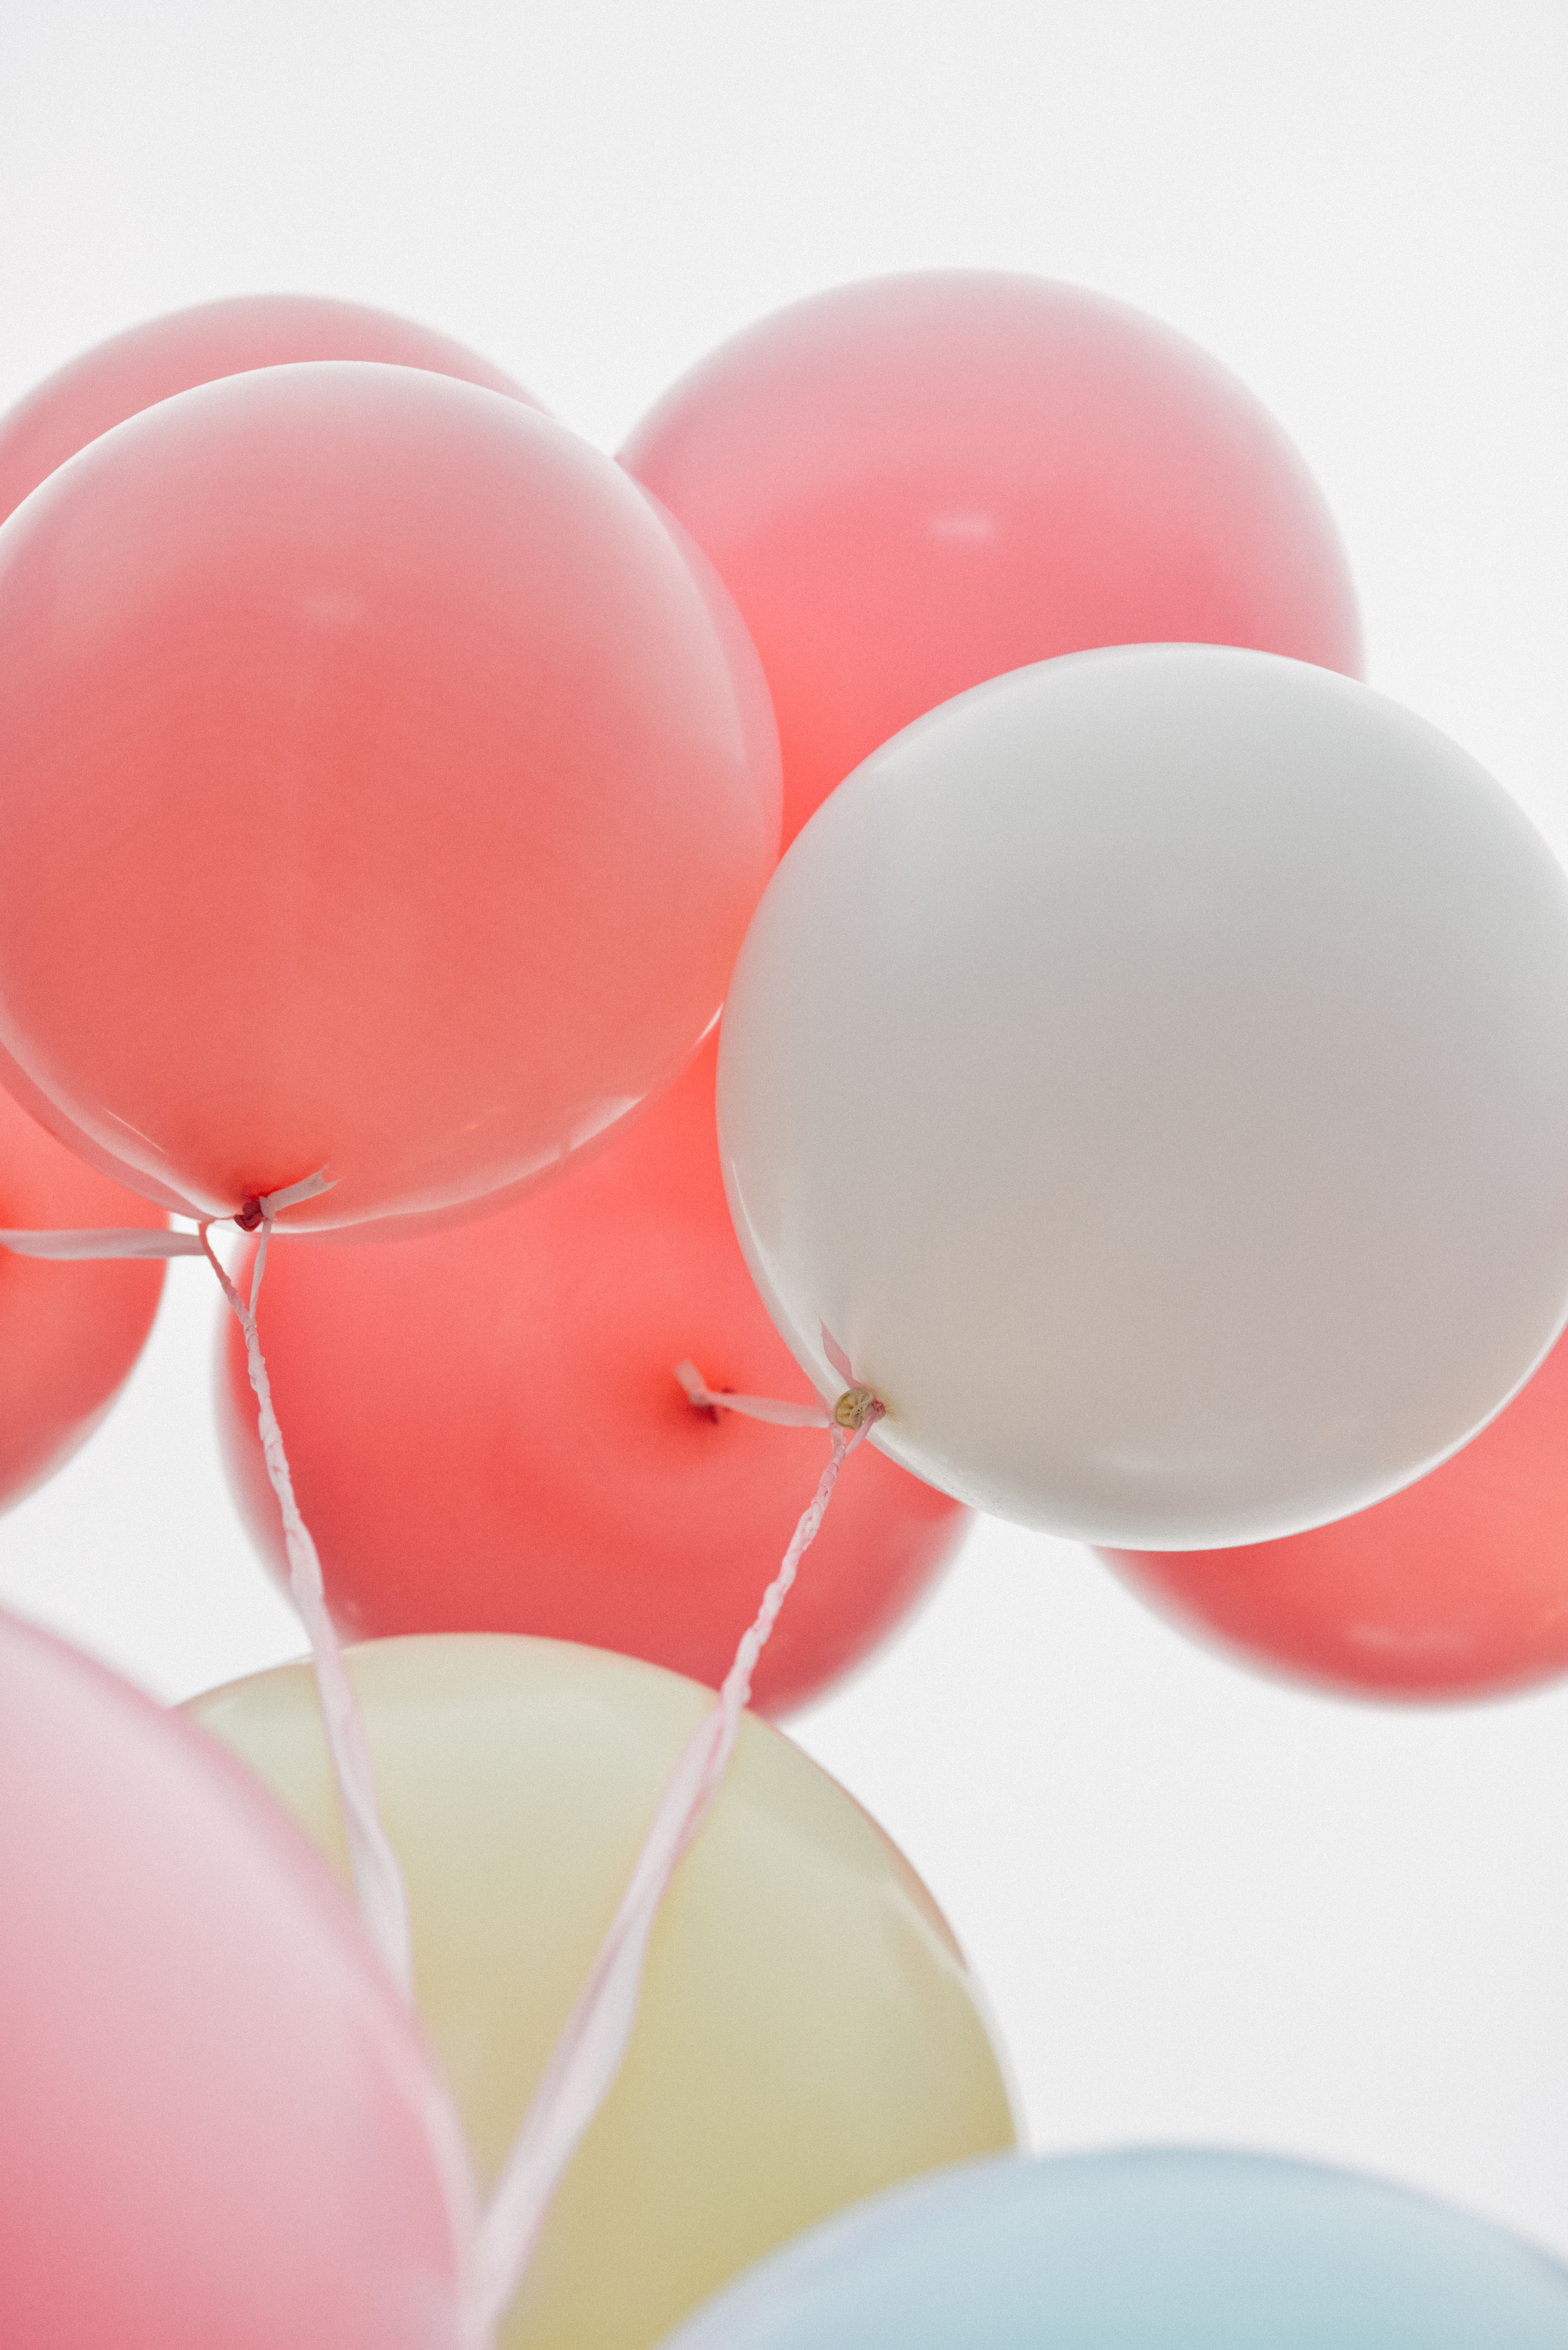 127363 Screensavers and Wallpapers Balloons for phone. Download Pink, Balloons, Miscellanea, Miscellaneous, Multicolored, Motley, Taw, Air Balloons pictures for free